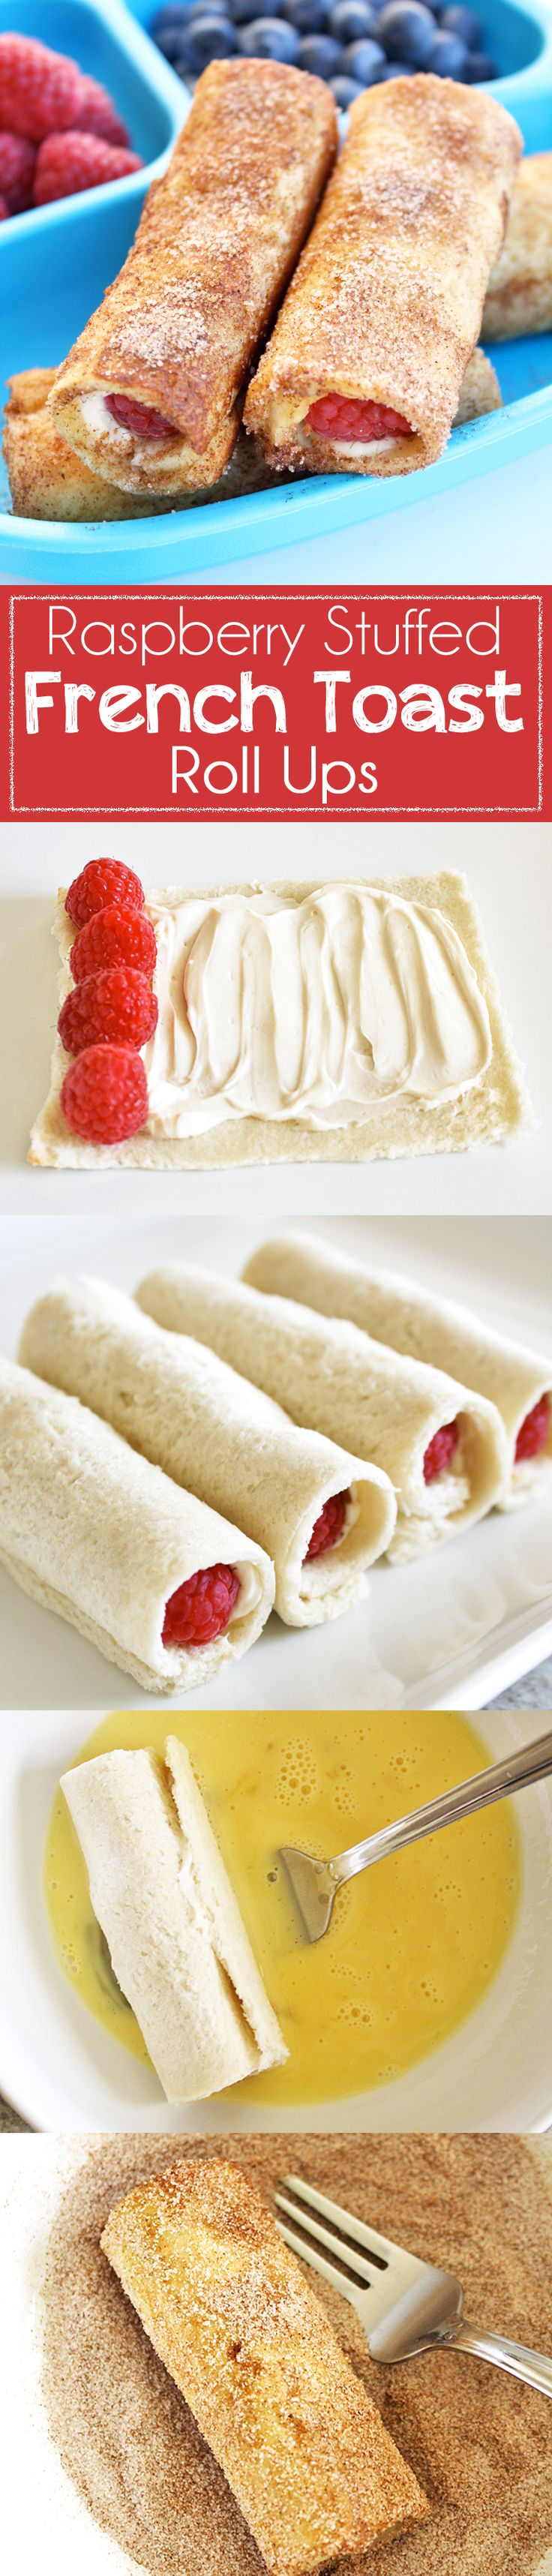 Raspberry Stuffed French Toast Roll Ups on MyRecipeMagic.com